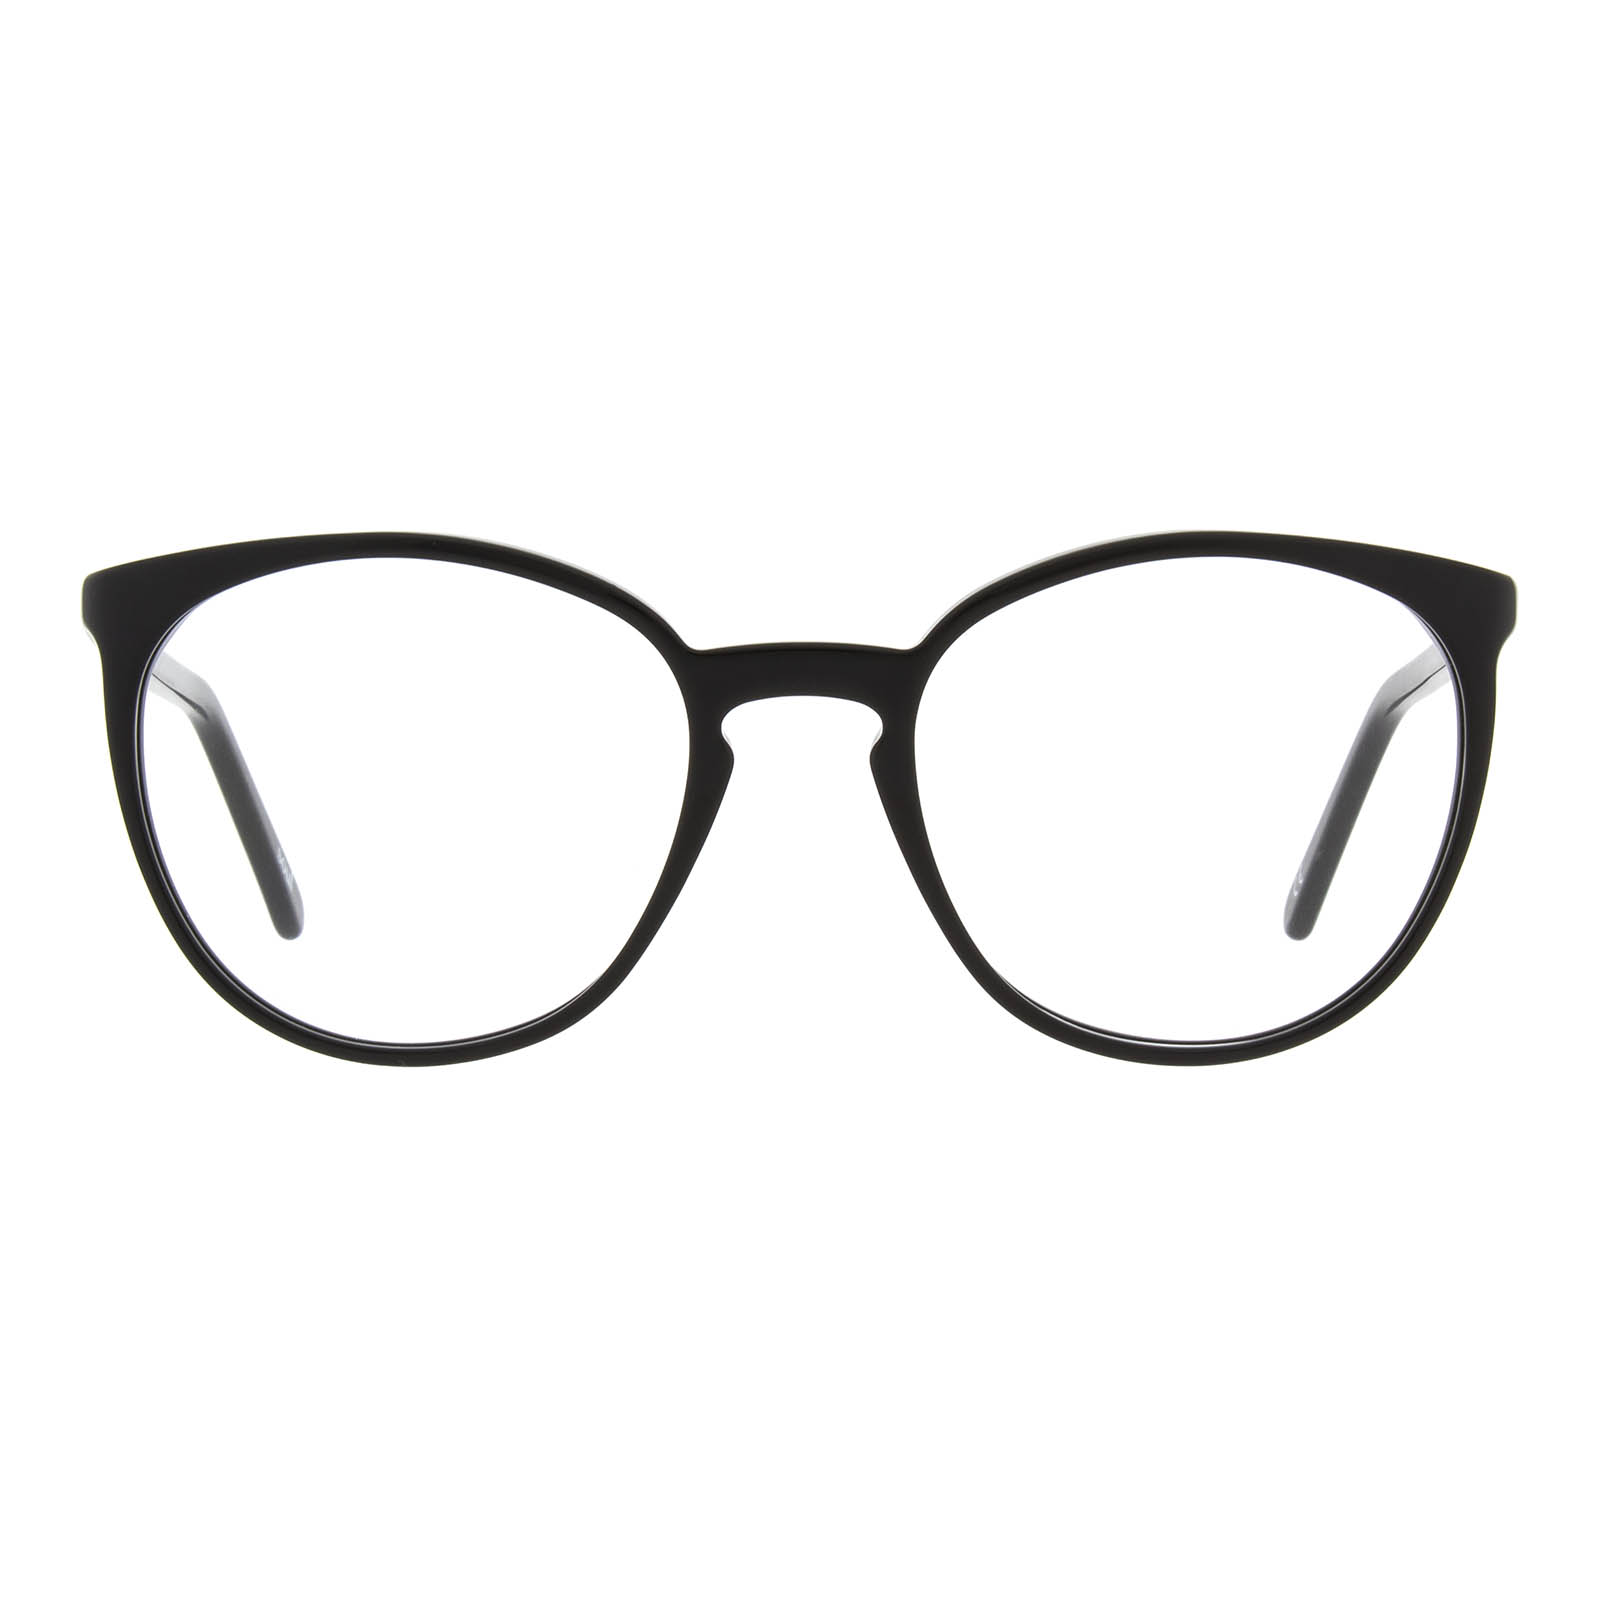 ANDY WOLF EYEWEAR_5095_A_front